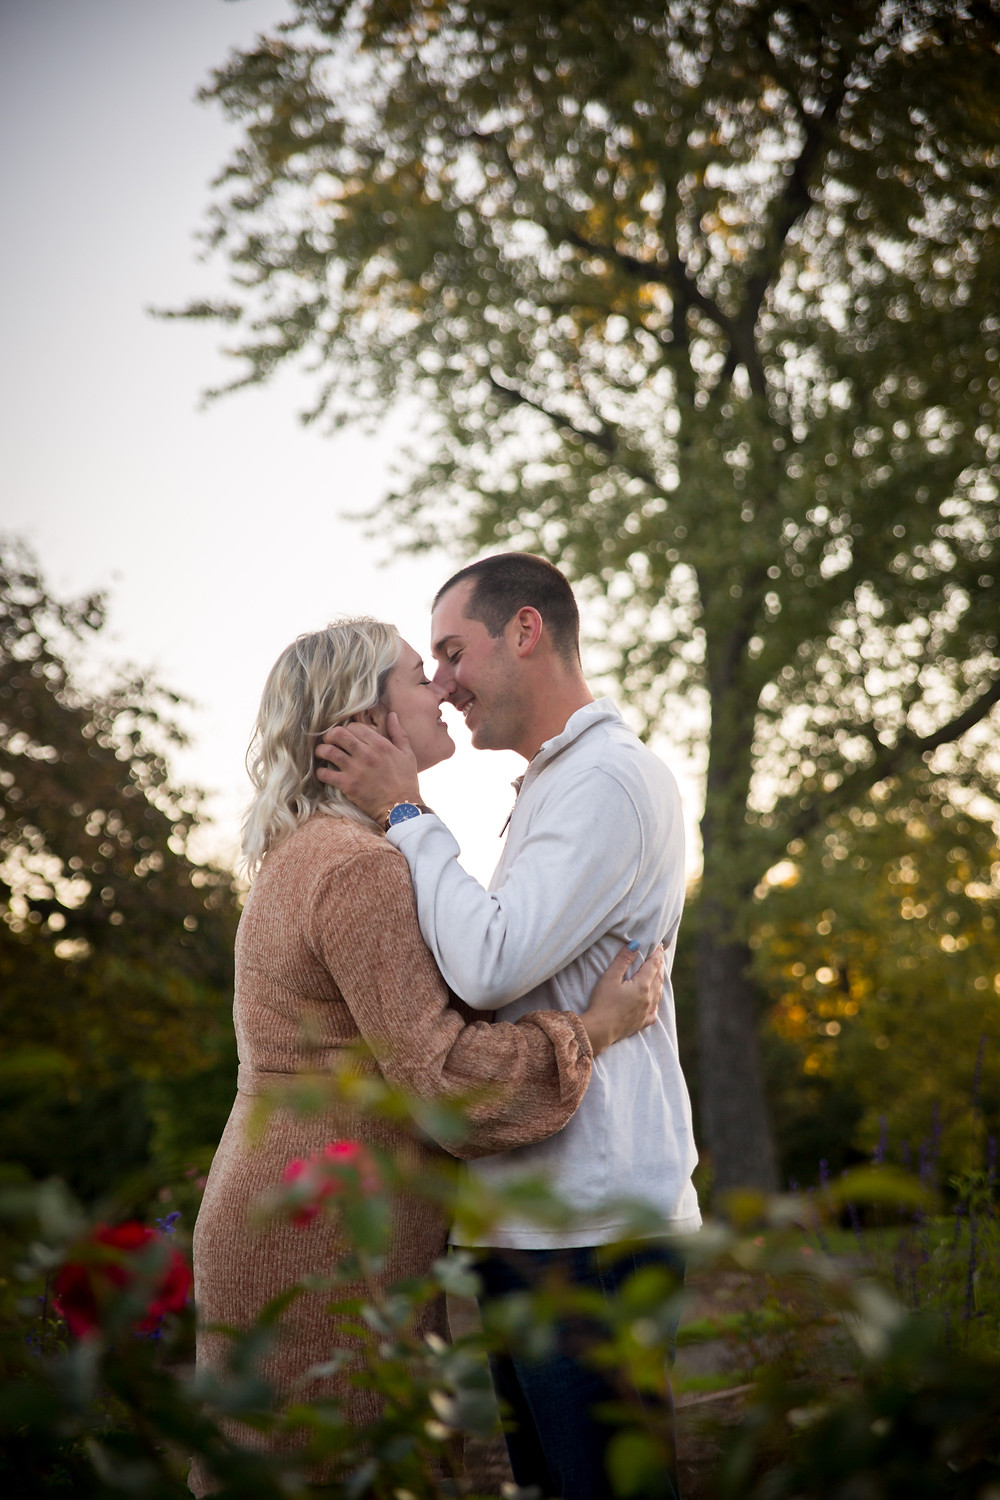 sunrise golden hour engagement photo Rose garden Delaware Park Buffalo NY